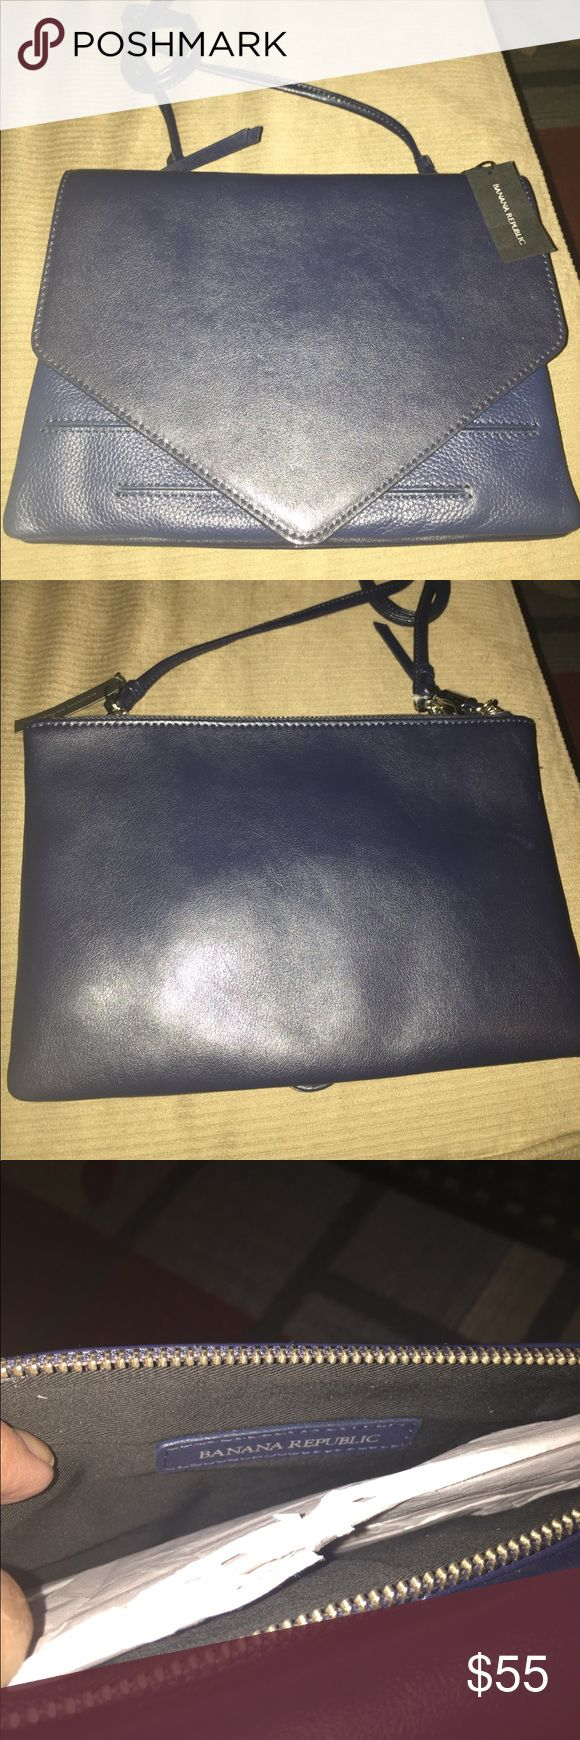 NWT BANANA REPUBLIC BLUE LEATHER SHOULDER BAG This is a brand-new blue leather banana republic handbag and has a long shoulder strap. It measures 10 inches from side to side and 7 inches from top to bottom. It has a zipper compartment on one side and a clutch compartment on the other. It really is a beautiful bag Banana Republic Bags Shoulder Bags